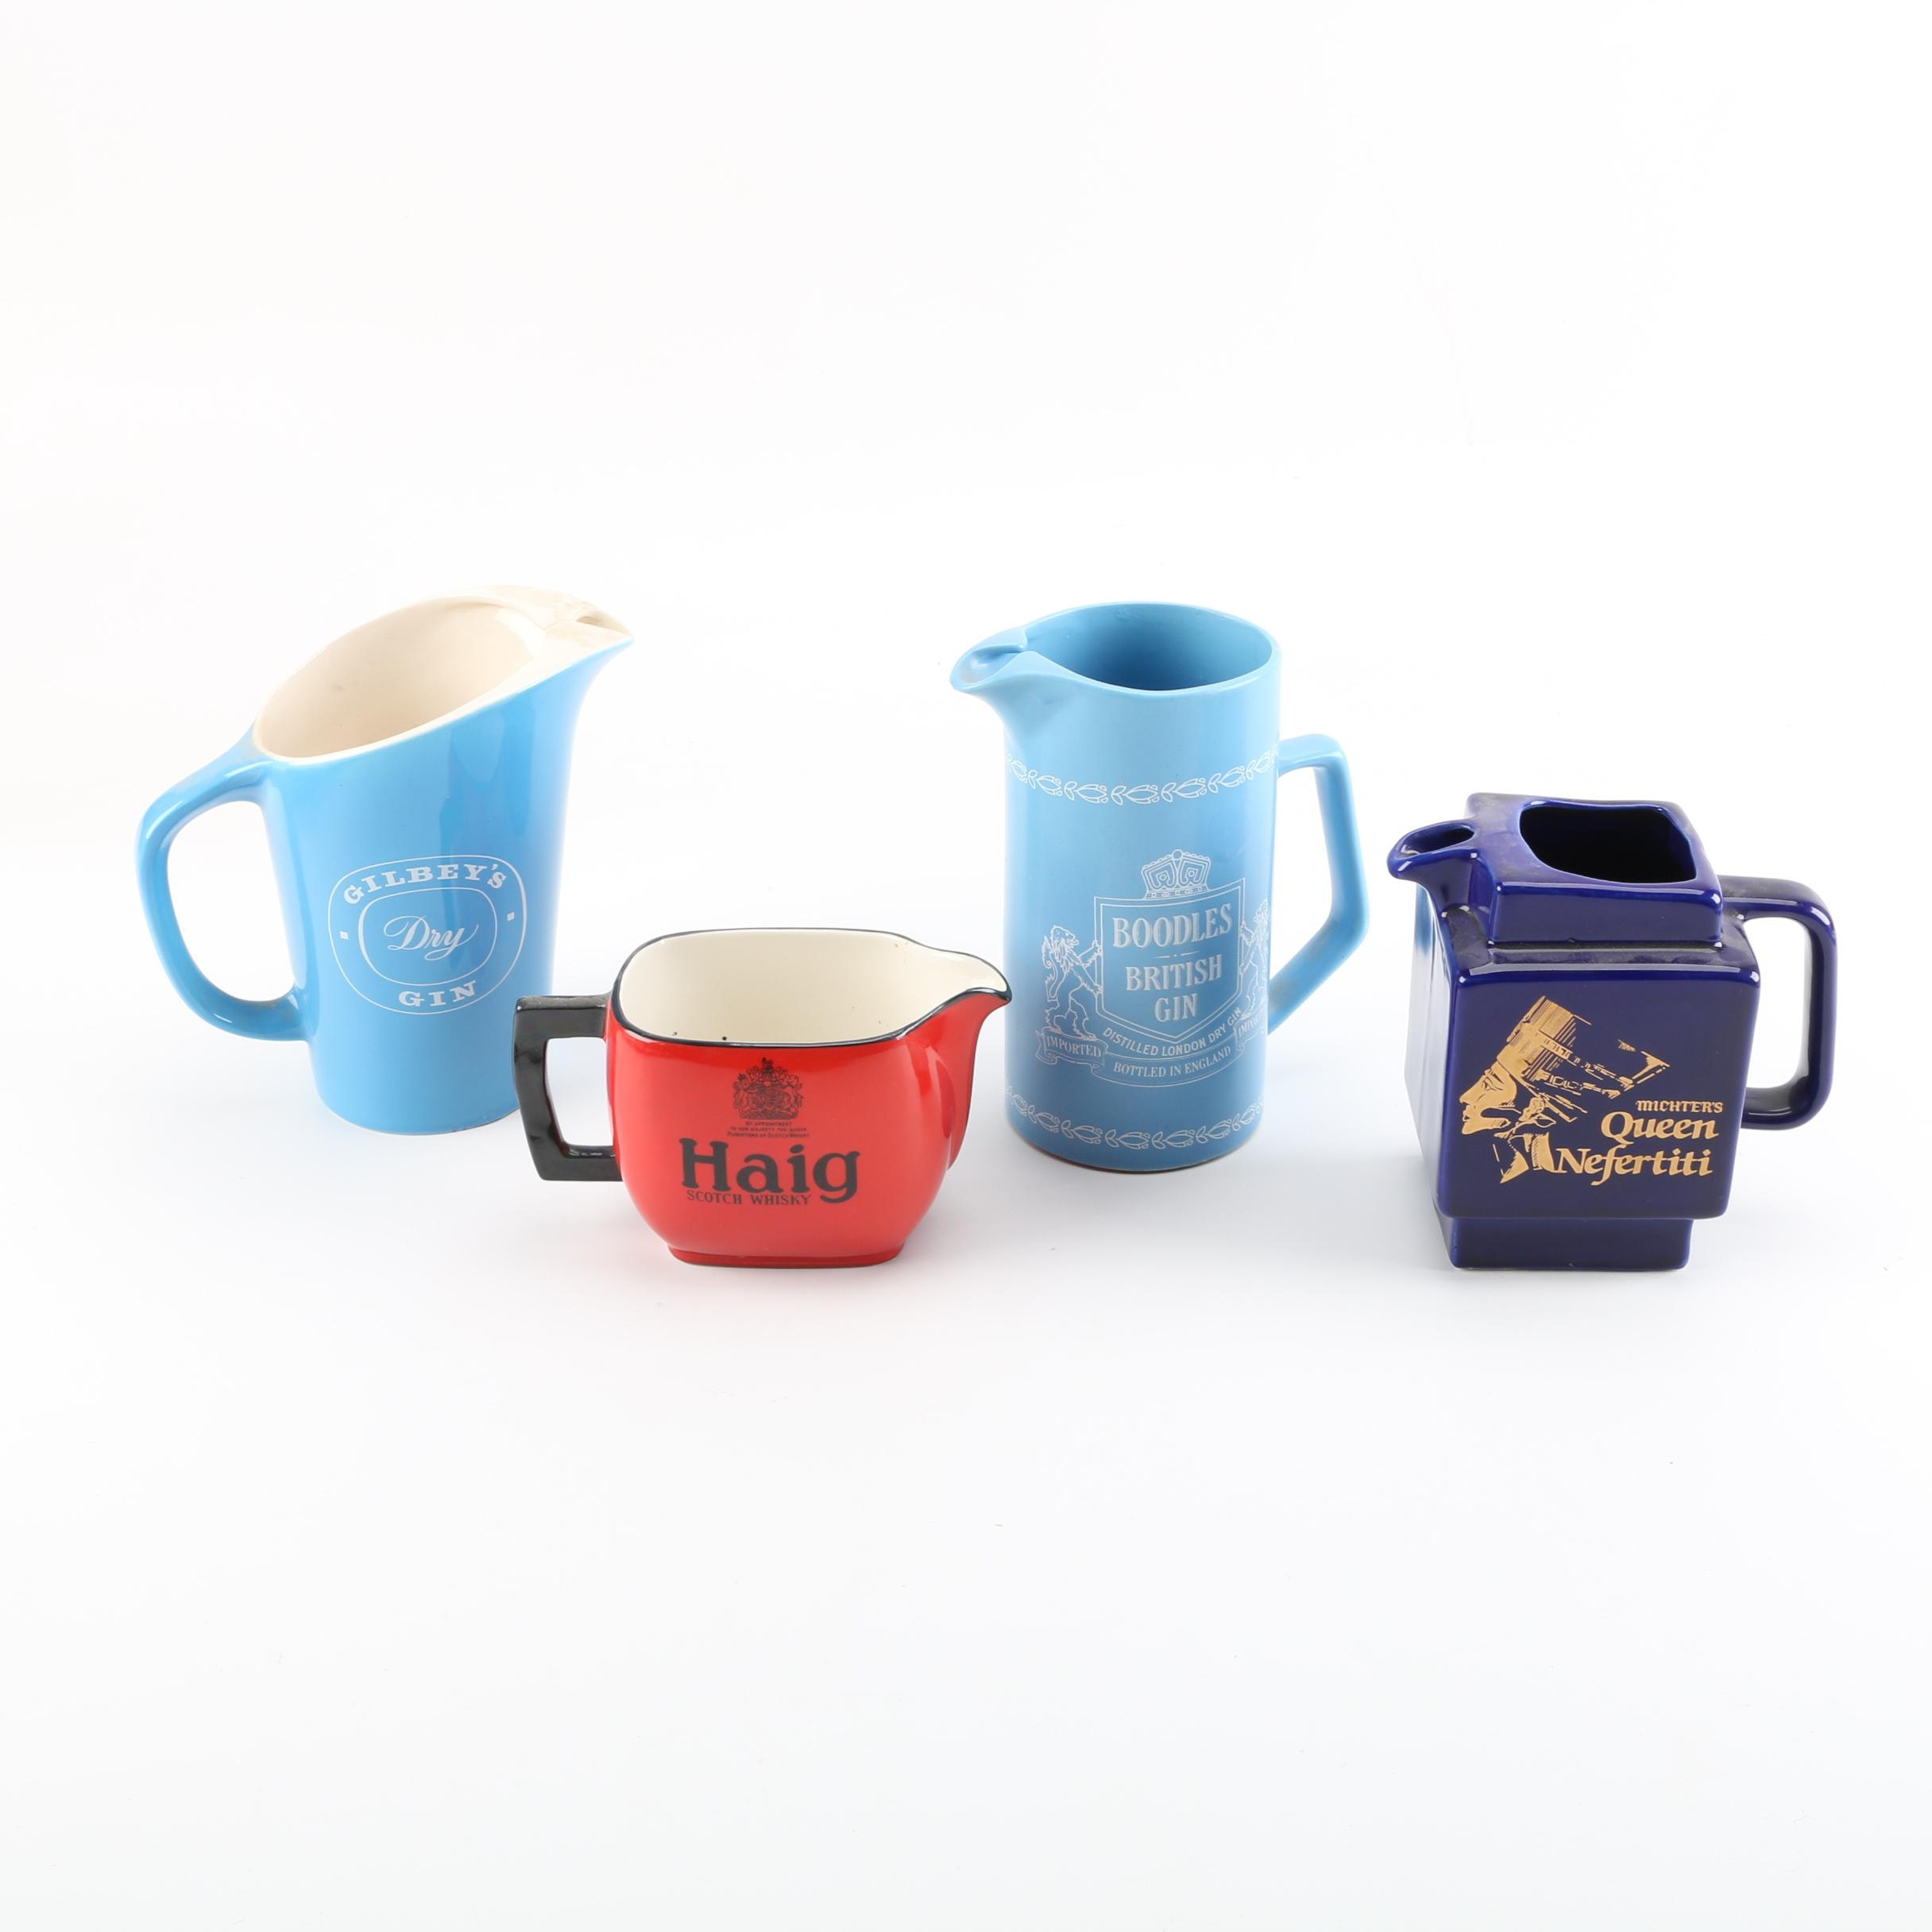 Collection of Vintage English Ceramic Marketing Pitchers